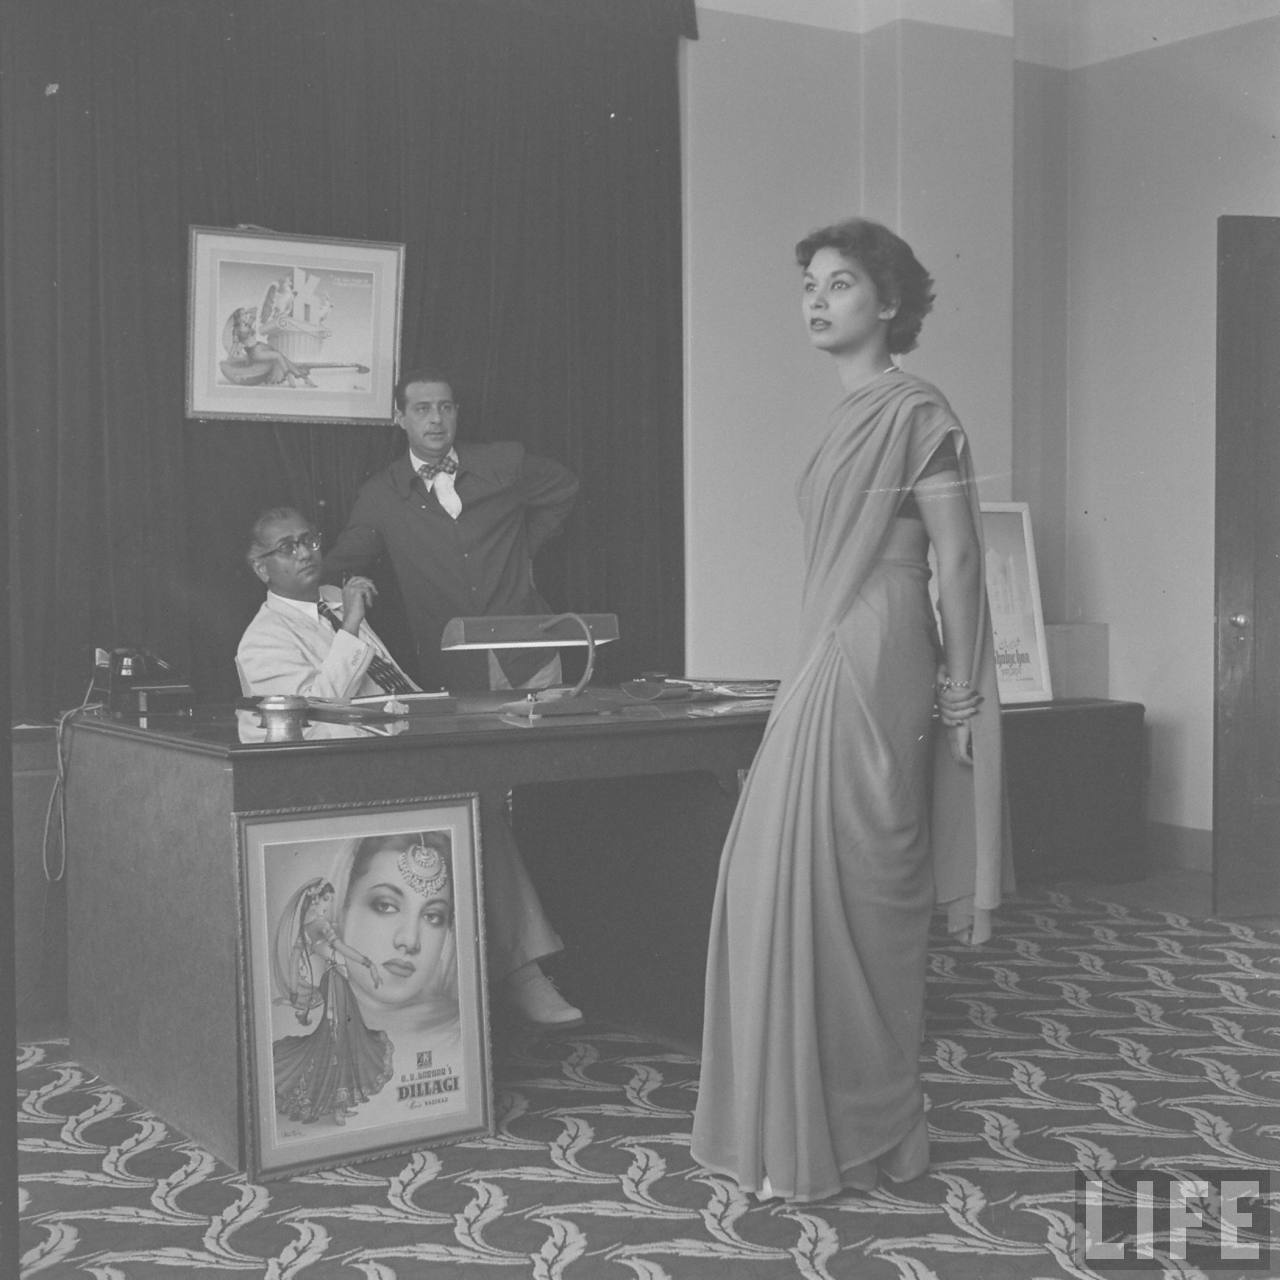 A R Kardar in white, auditioning women for a film